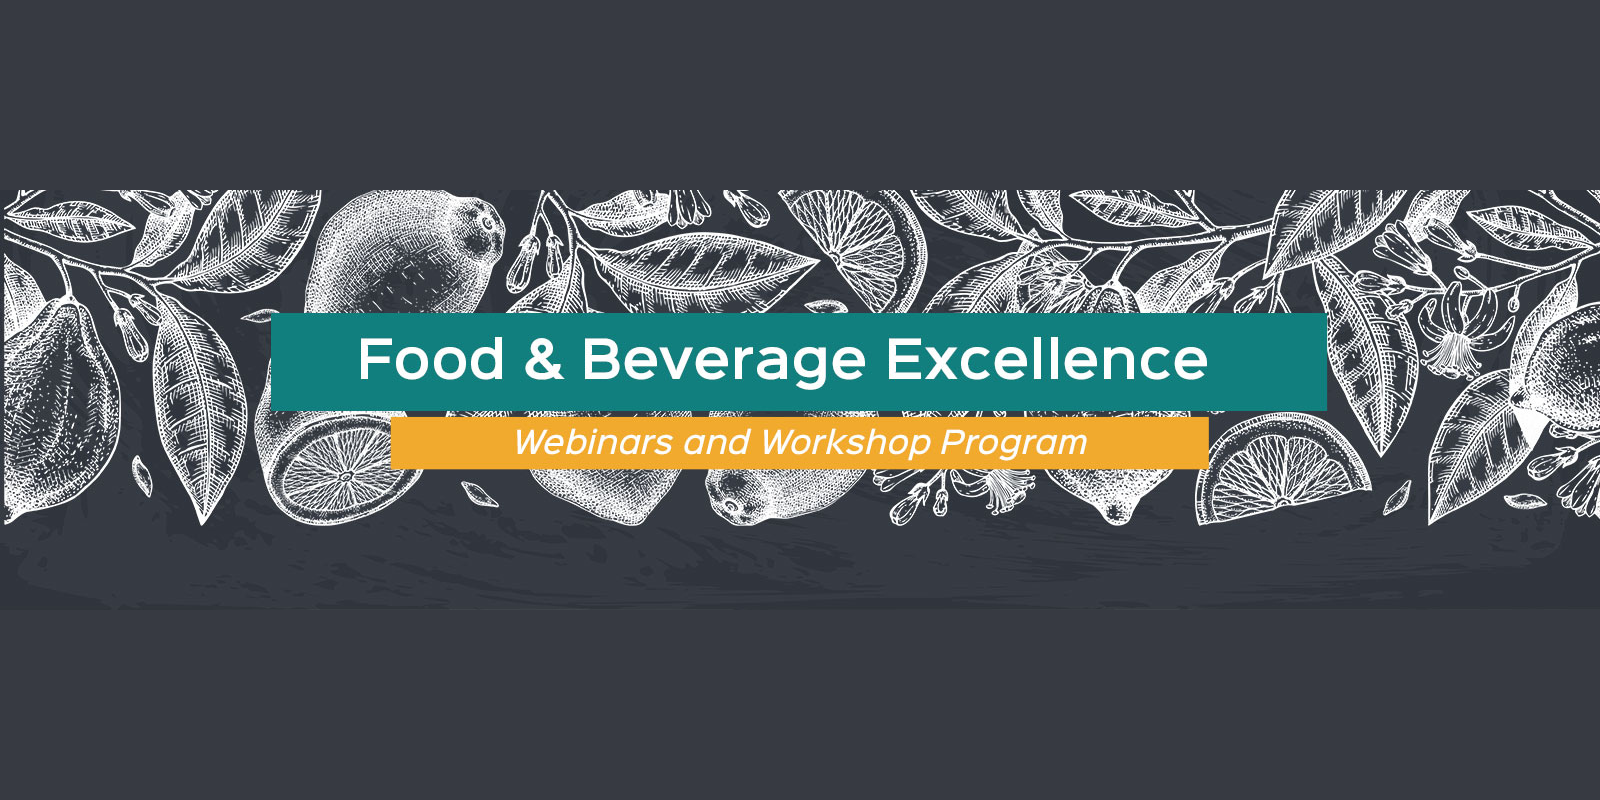 IACC Food & Beverage Excellence Center